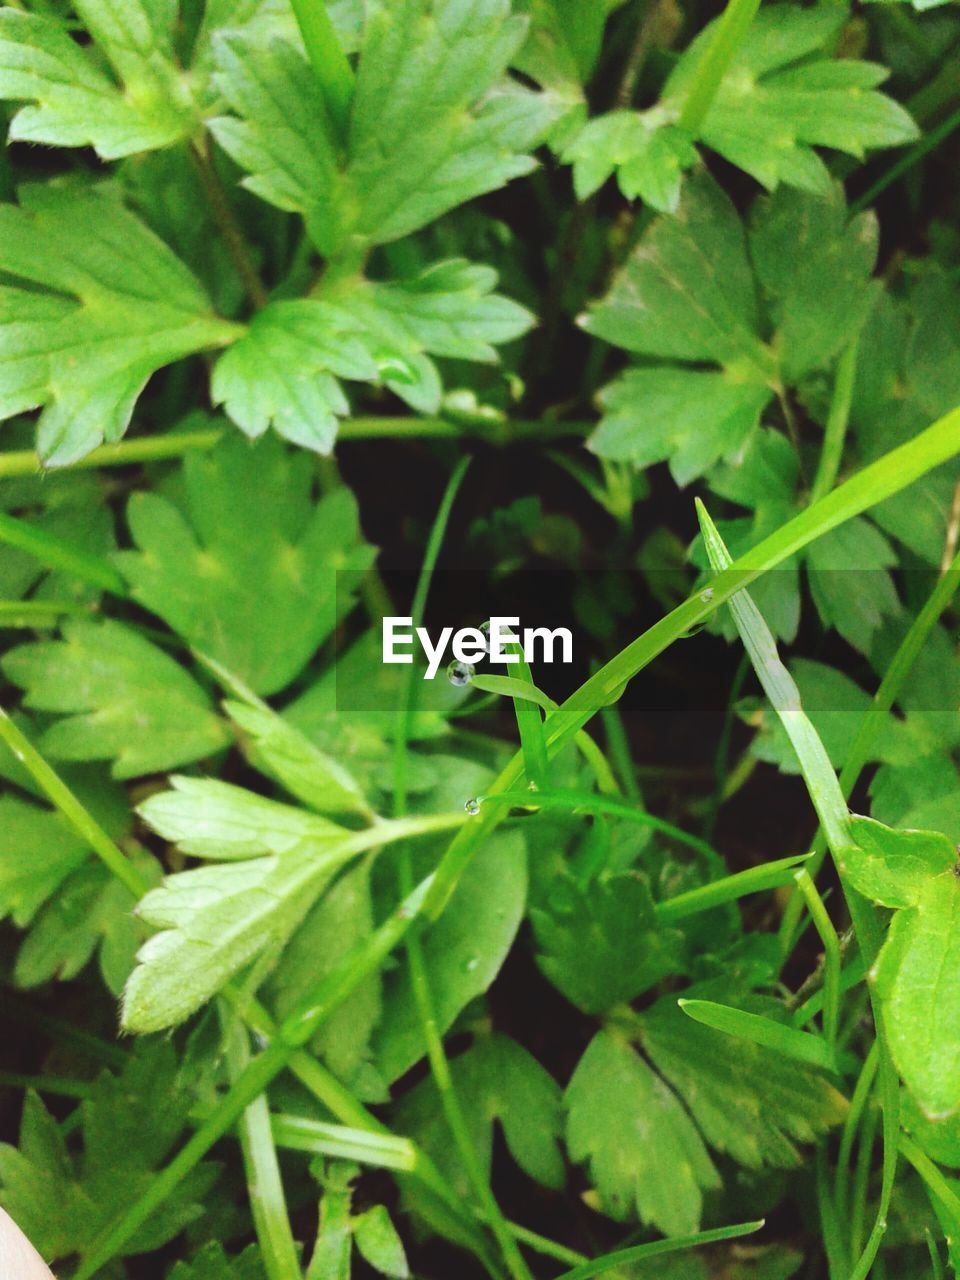 green color, plant part, leaf, plant, growth, one animal, animal themes, animal, animal wildlife, animals in the wild, nature, no people, close-up, day, invertebrate, insect, high angle view, outdoors, beauty in nature, focus on foreground